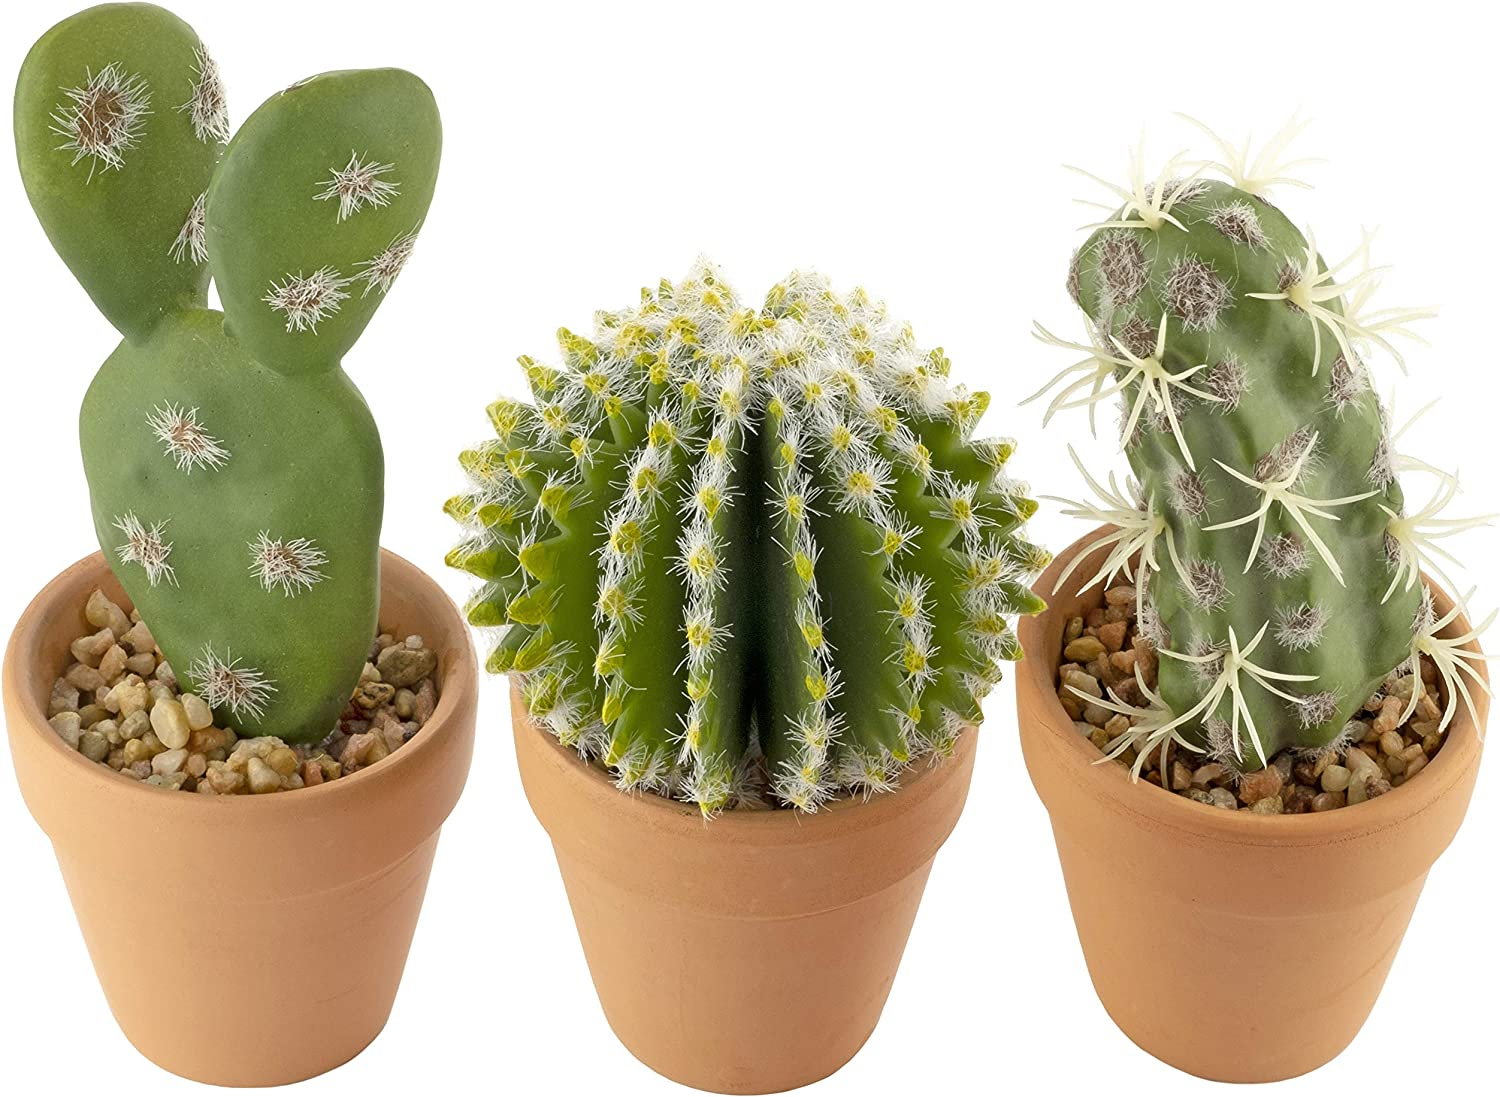 Artificial Succulent Plants - Set of 3 Cacti in Real Terracotta Pots for Home Decor – 6.7 inch/17cms Tall - Indoors and Outdoors - Living Room, Kitchen, Bathroom, Office, Desk, Bedroom